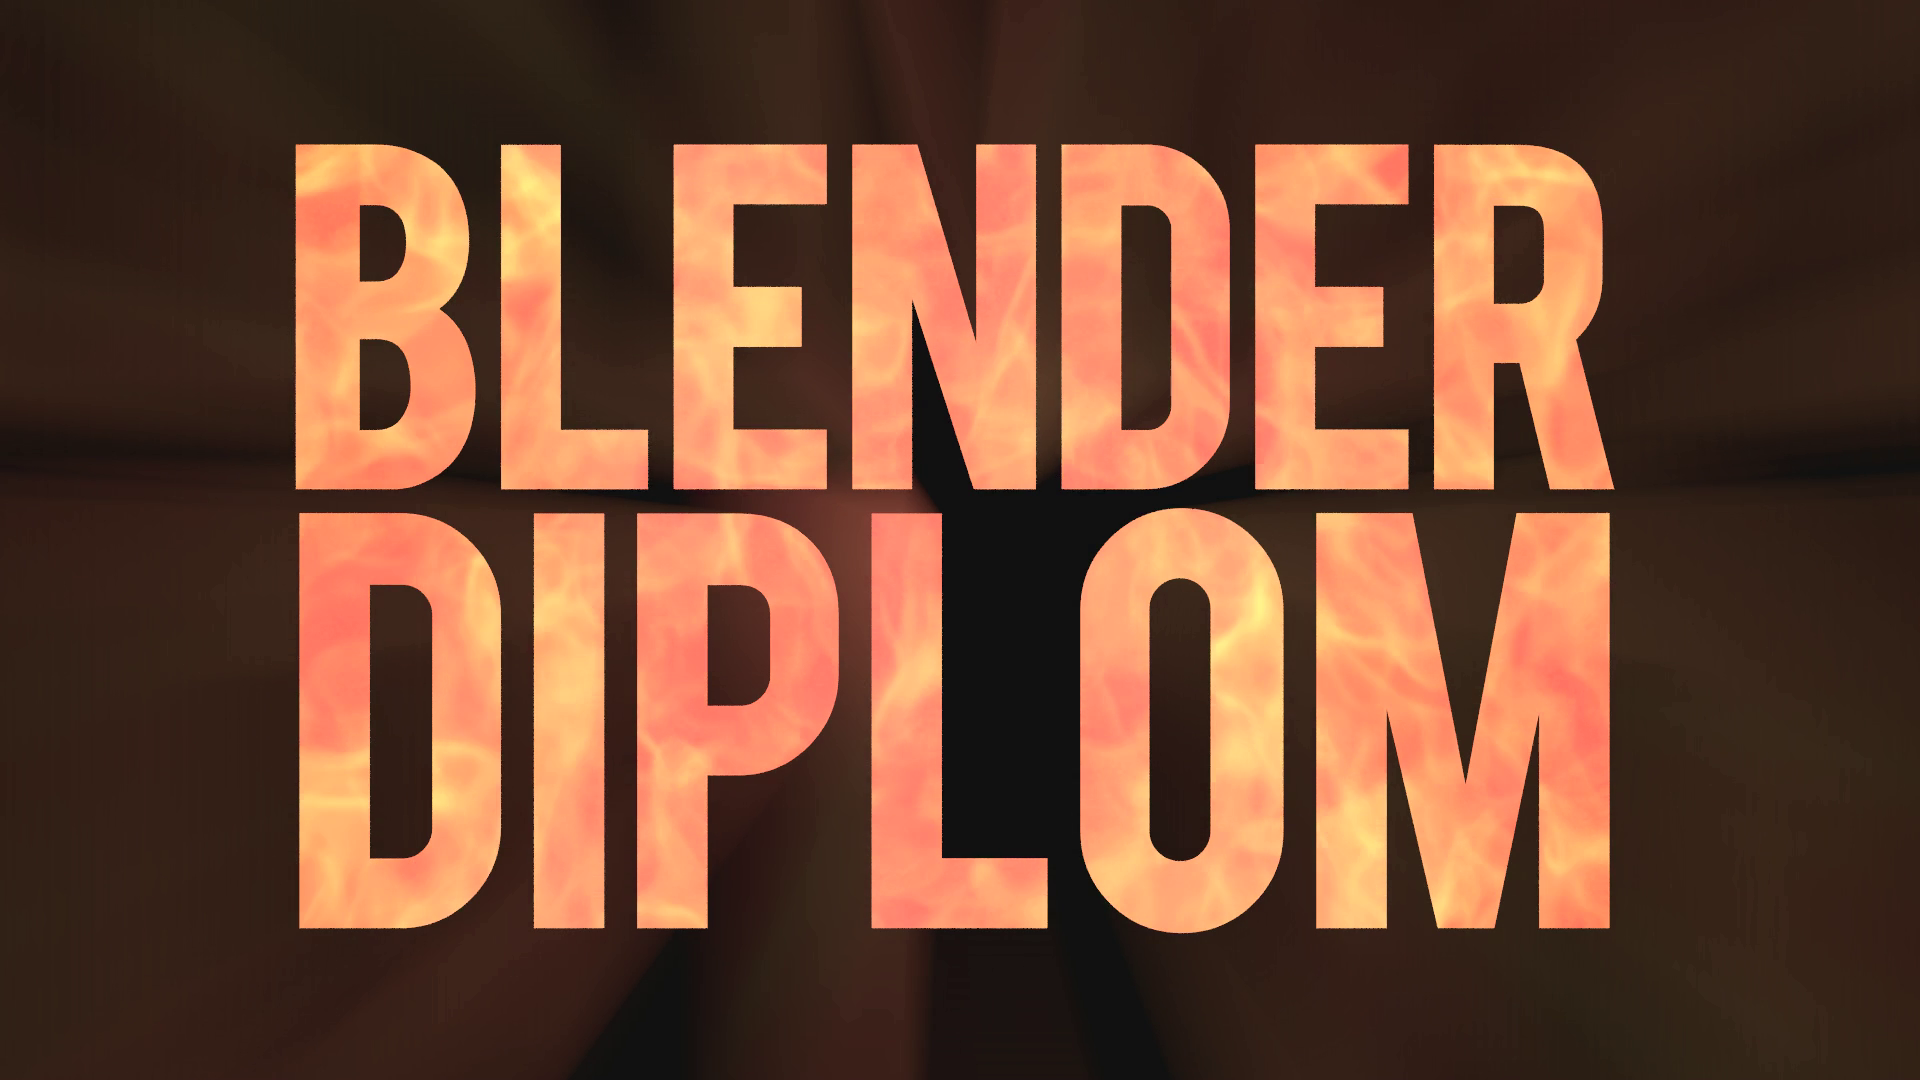 blender fire background stencil cycles